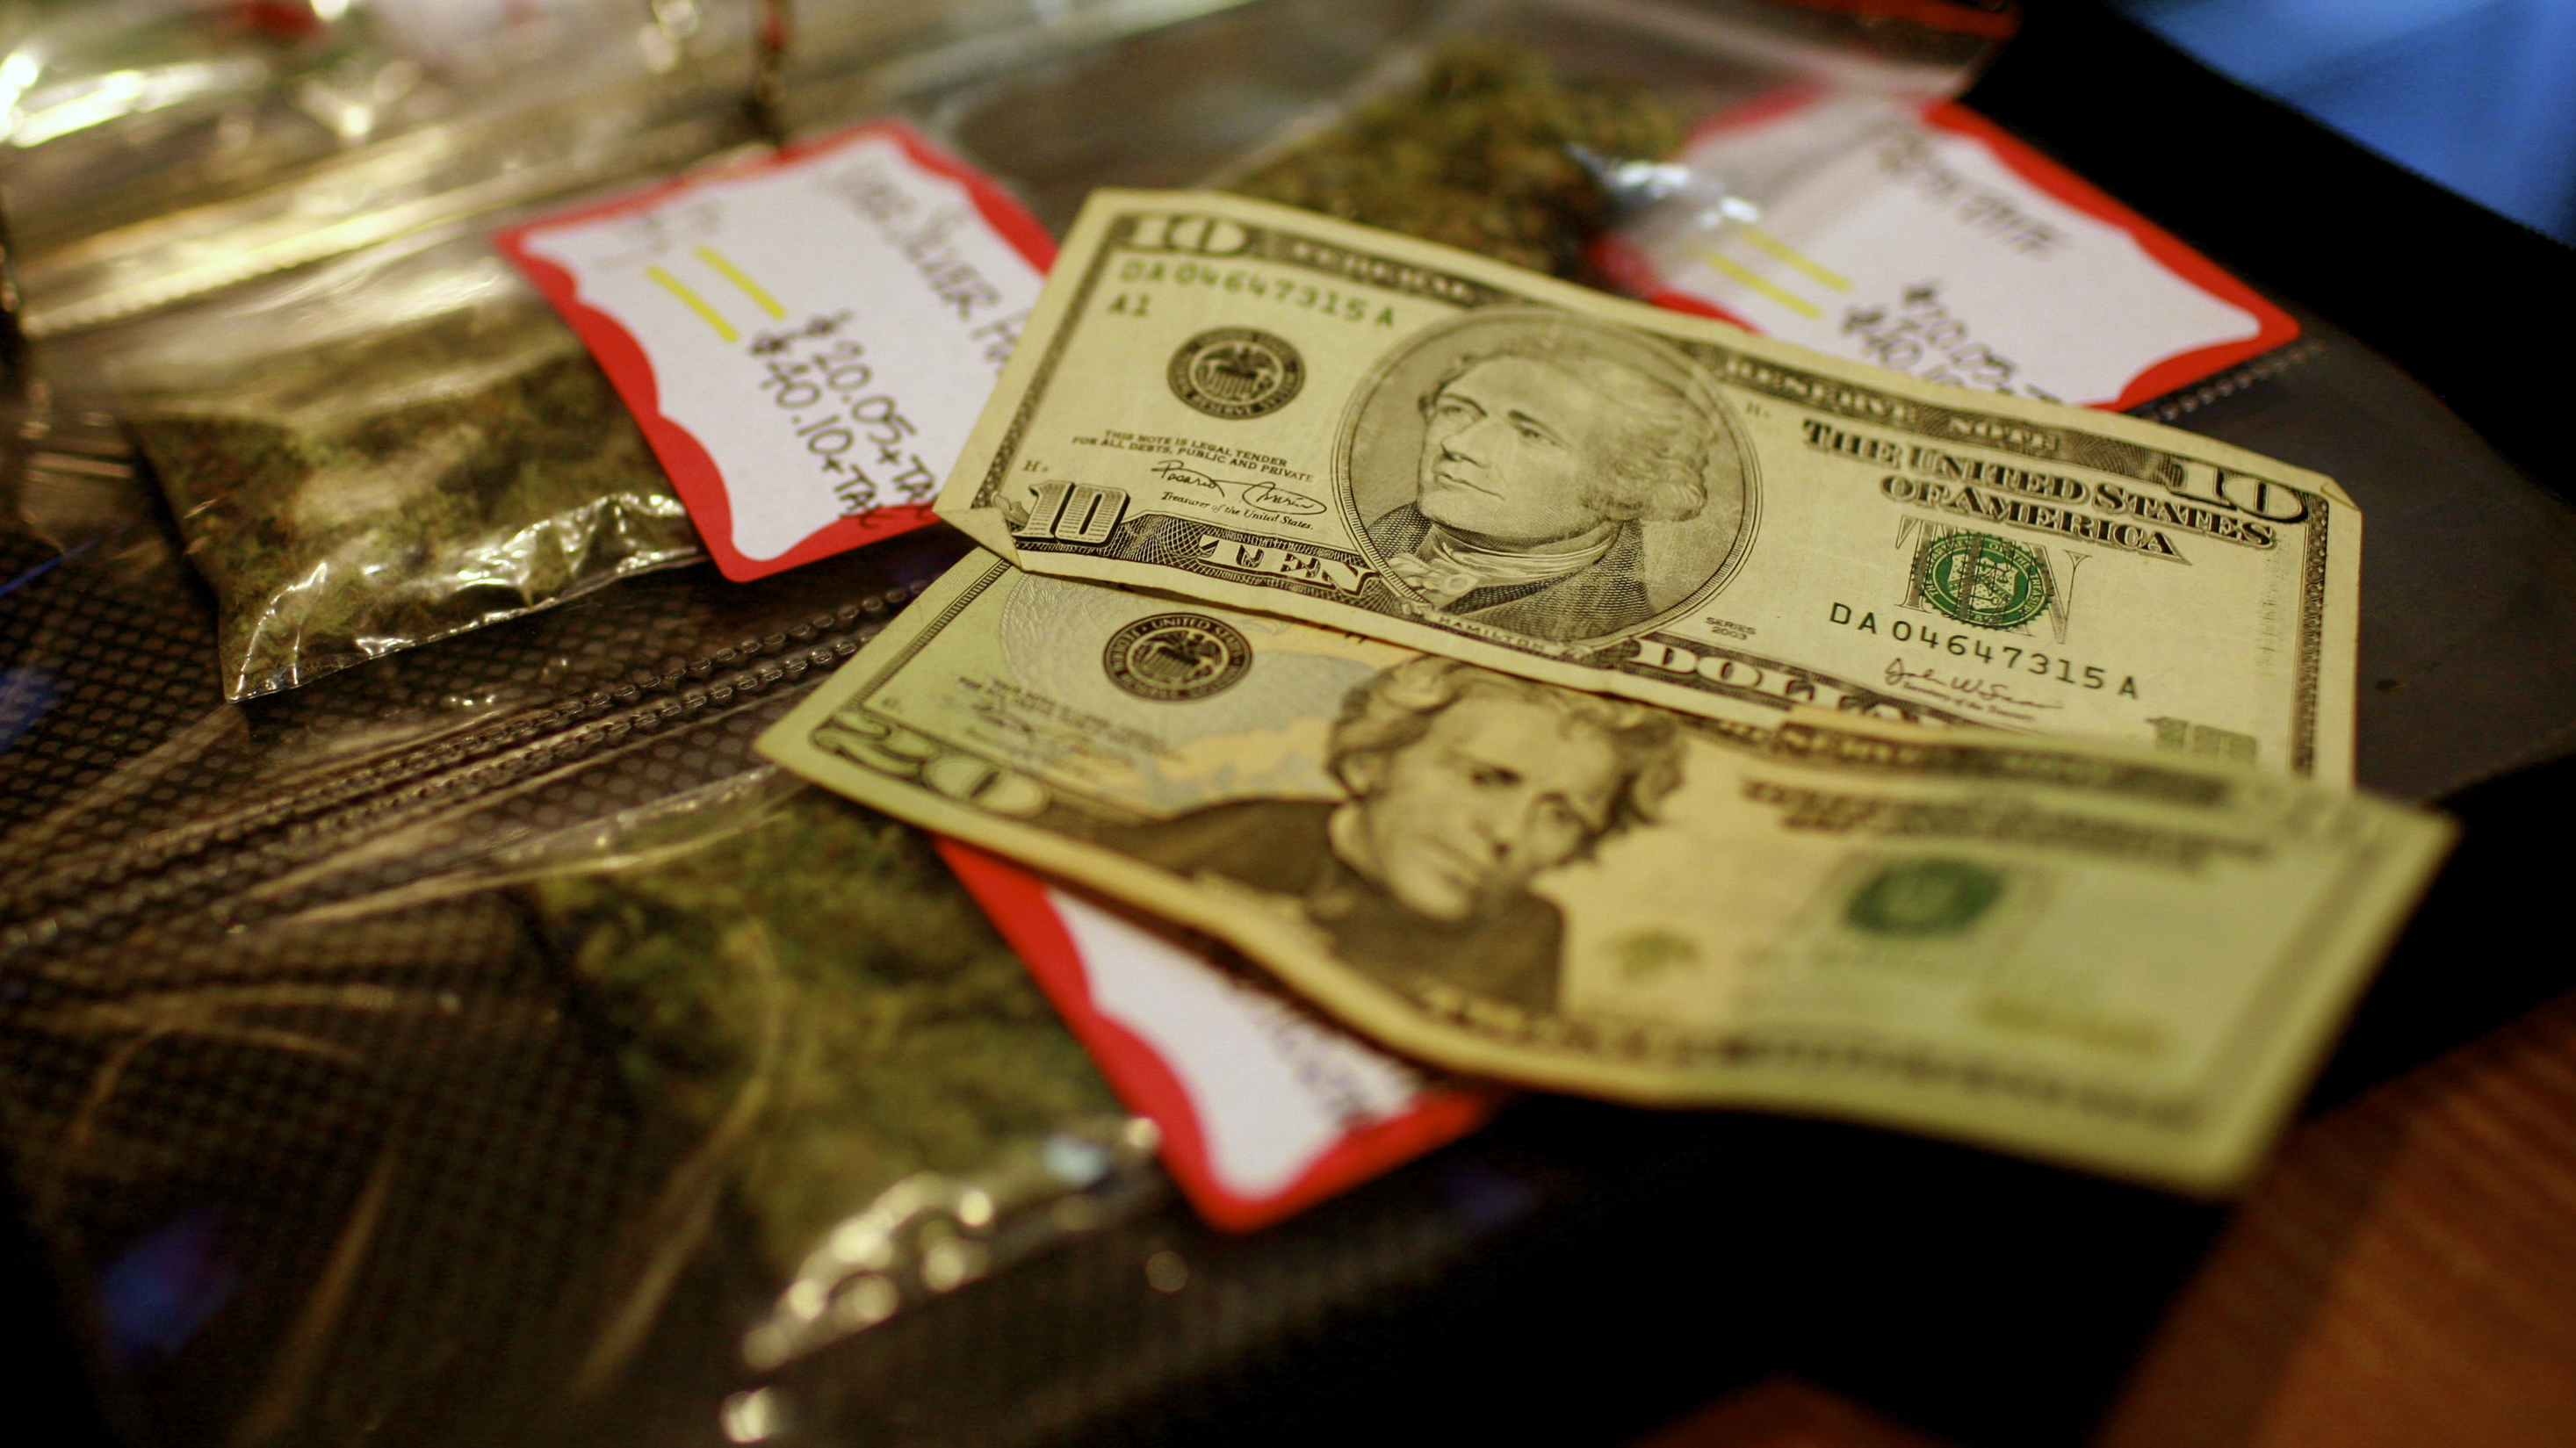 Medical marijuana and cash.